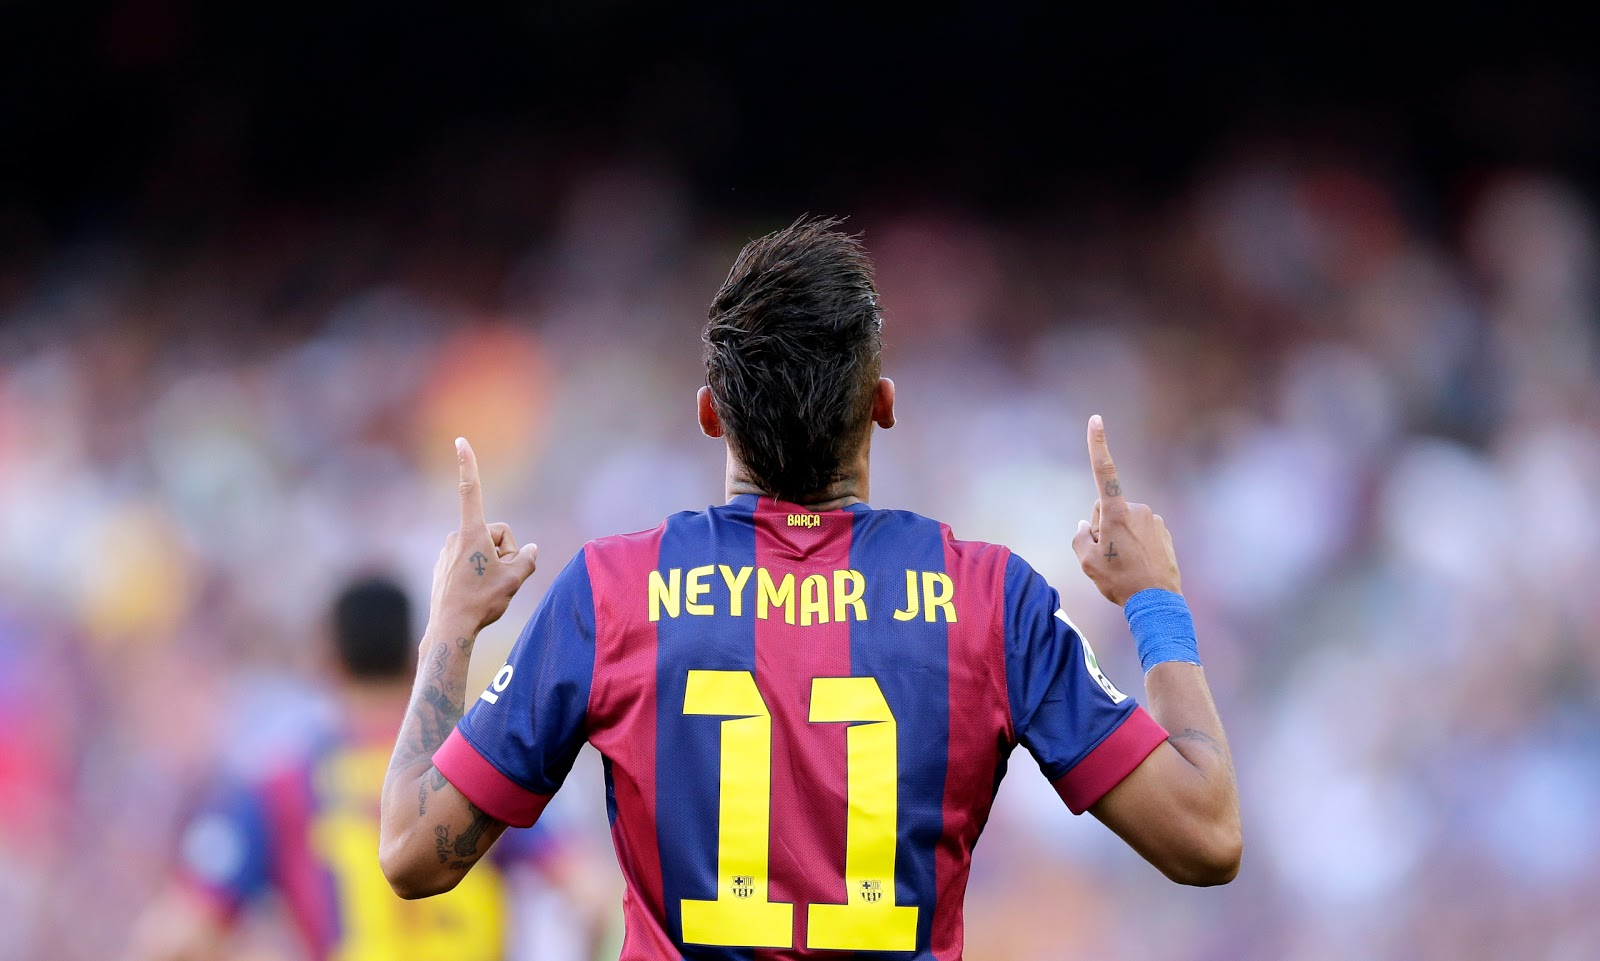 Hd wallpaper neymar - Neymar Jr Hd Wallpapers Images Pictures Free Download